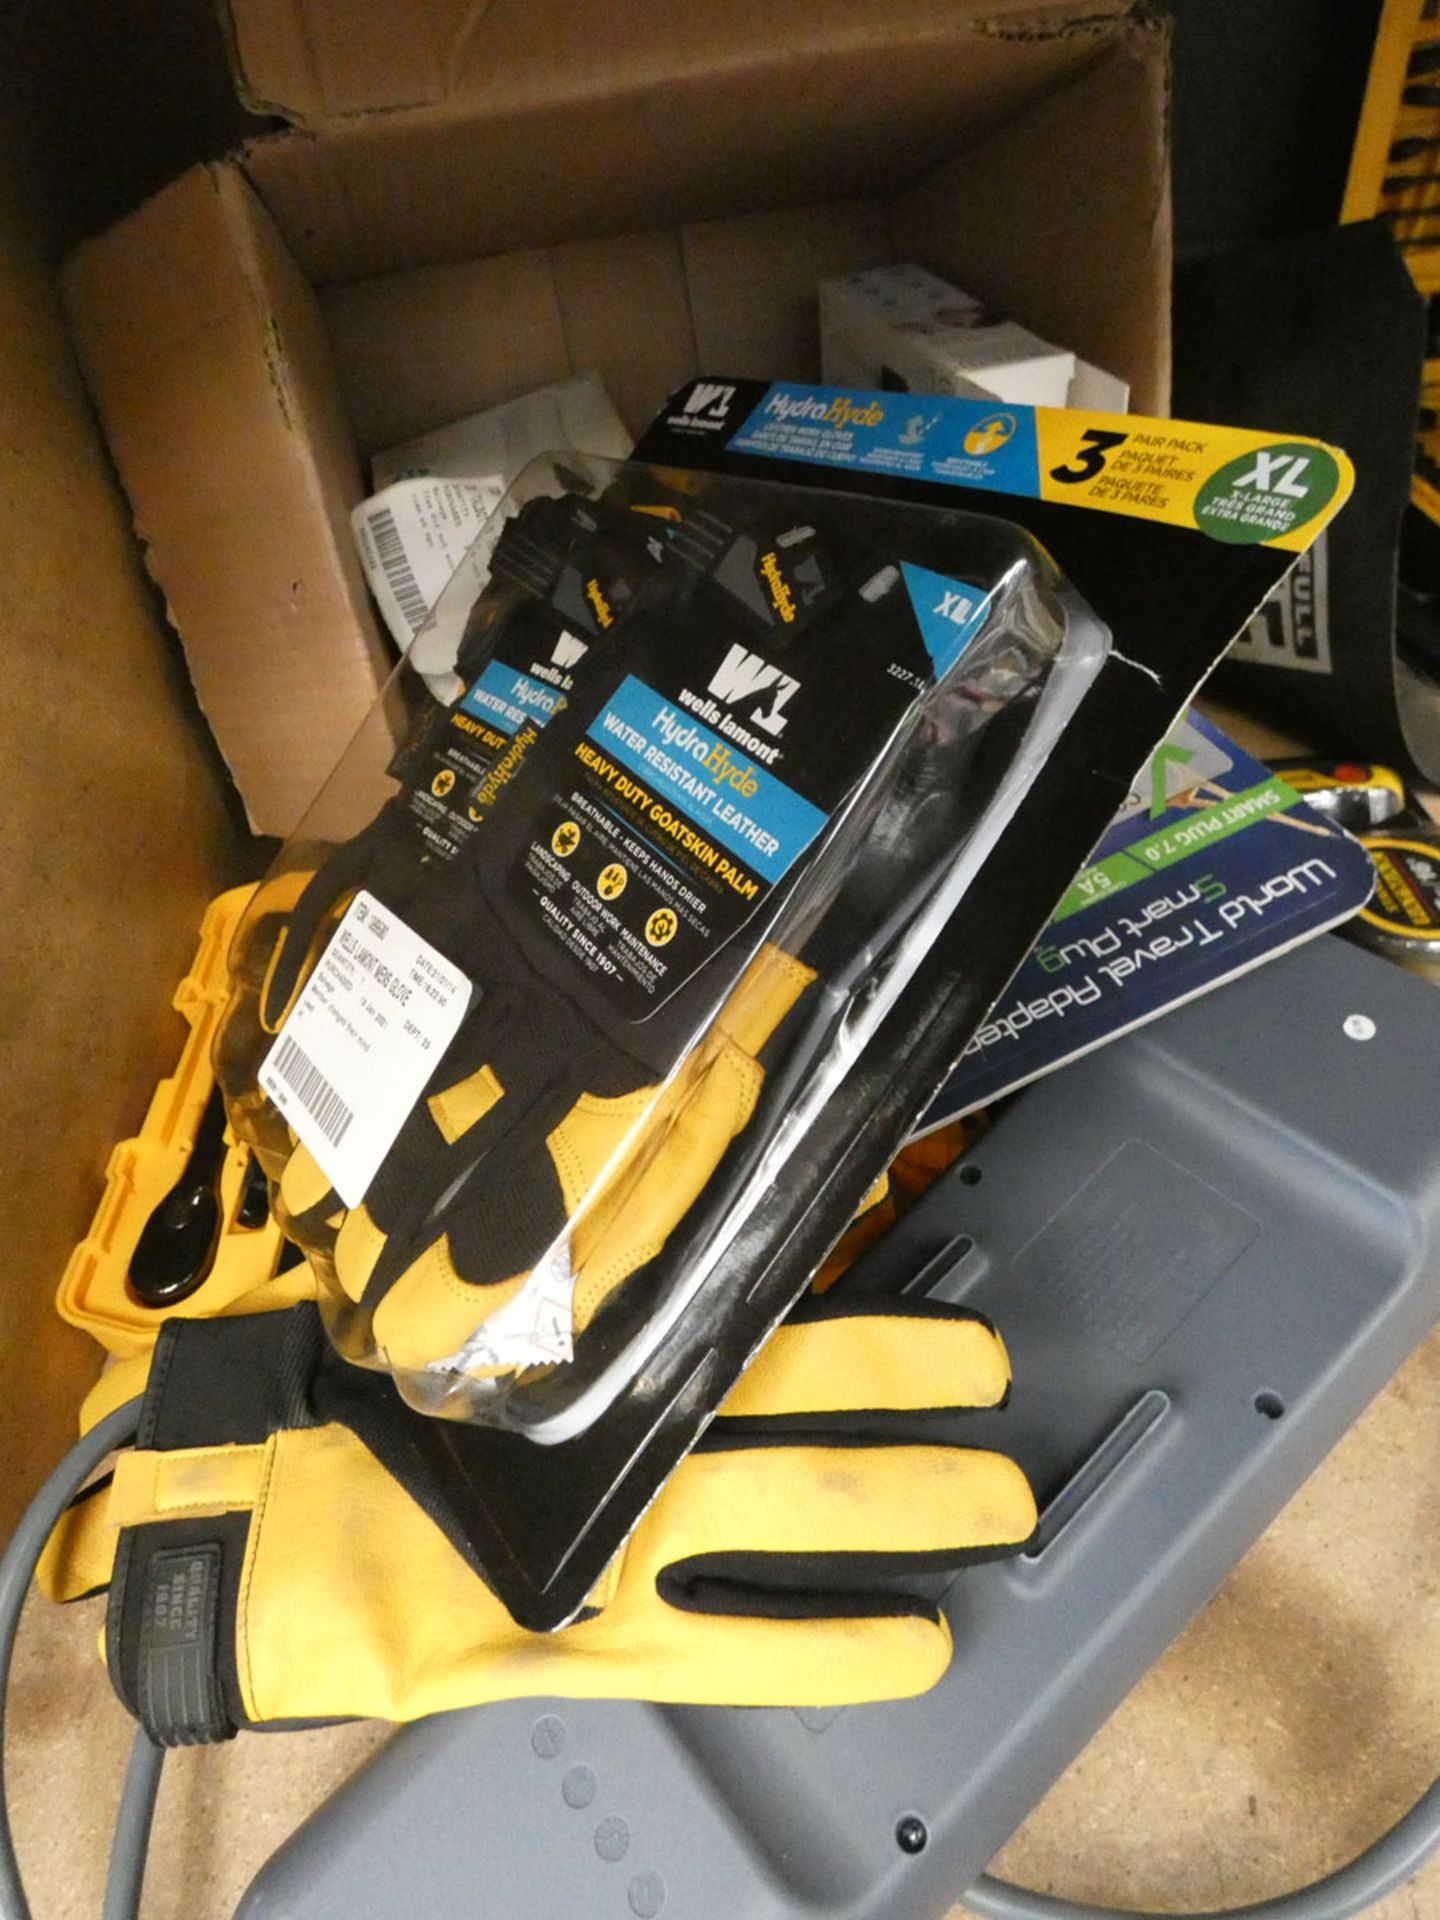 Box containing work gloves, extension cable, small DeWalt socket set, Stanley FatMax tape measure - Image 2 of 2